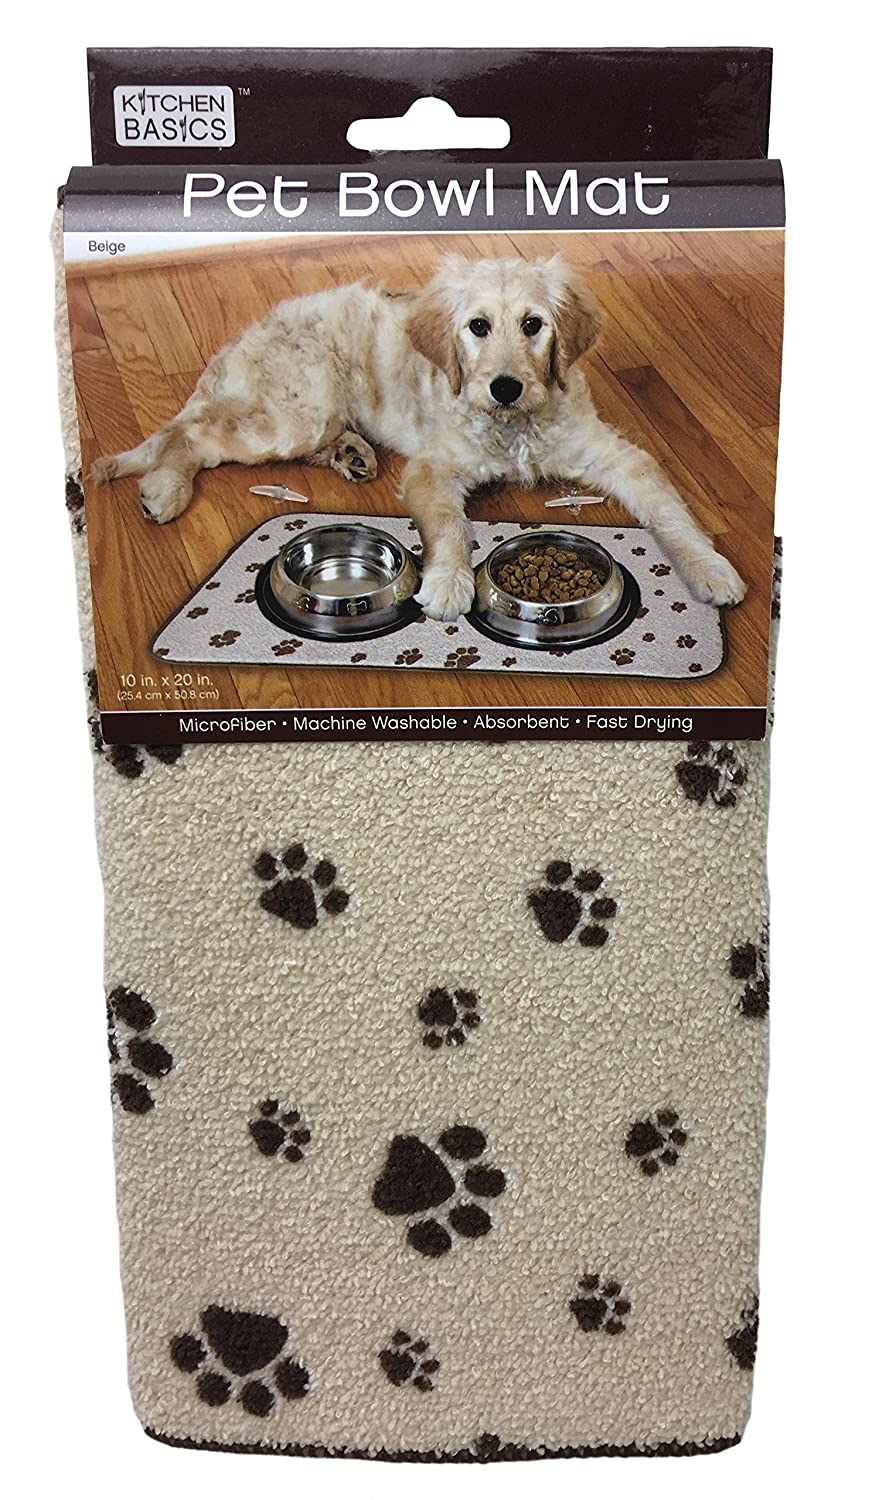 anti skid taupe walmart kitchen com ip pet basics mat bowl microfiber mats